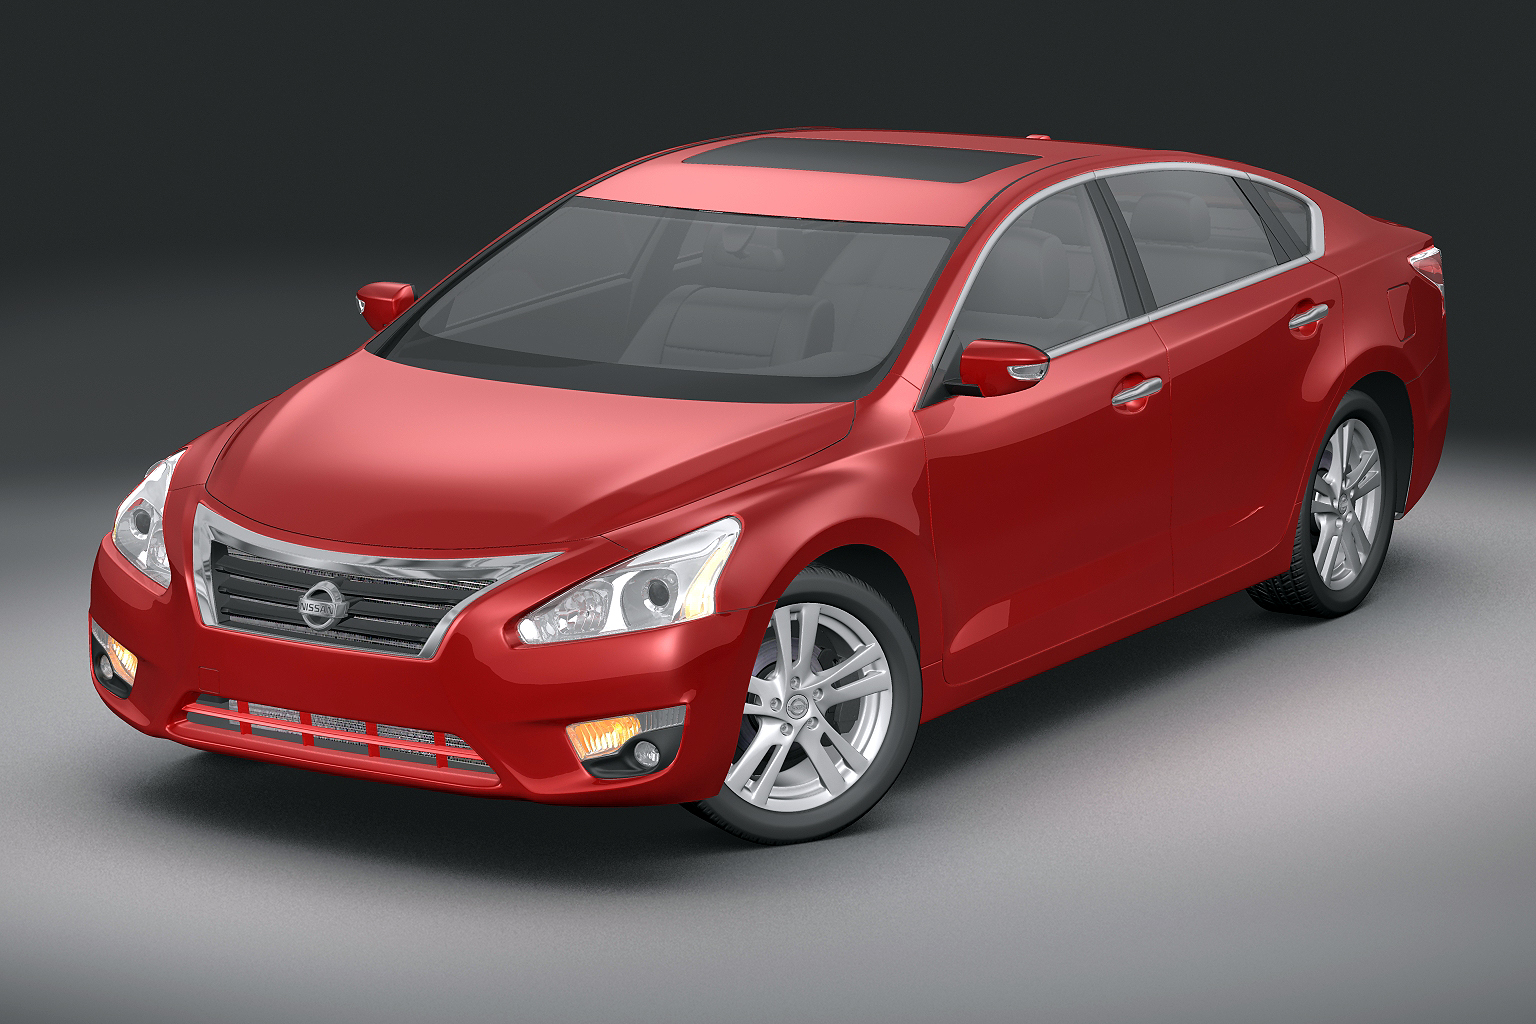 2013 nissan altima 3d model 3ds max fbx lwo obj 141834